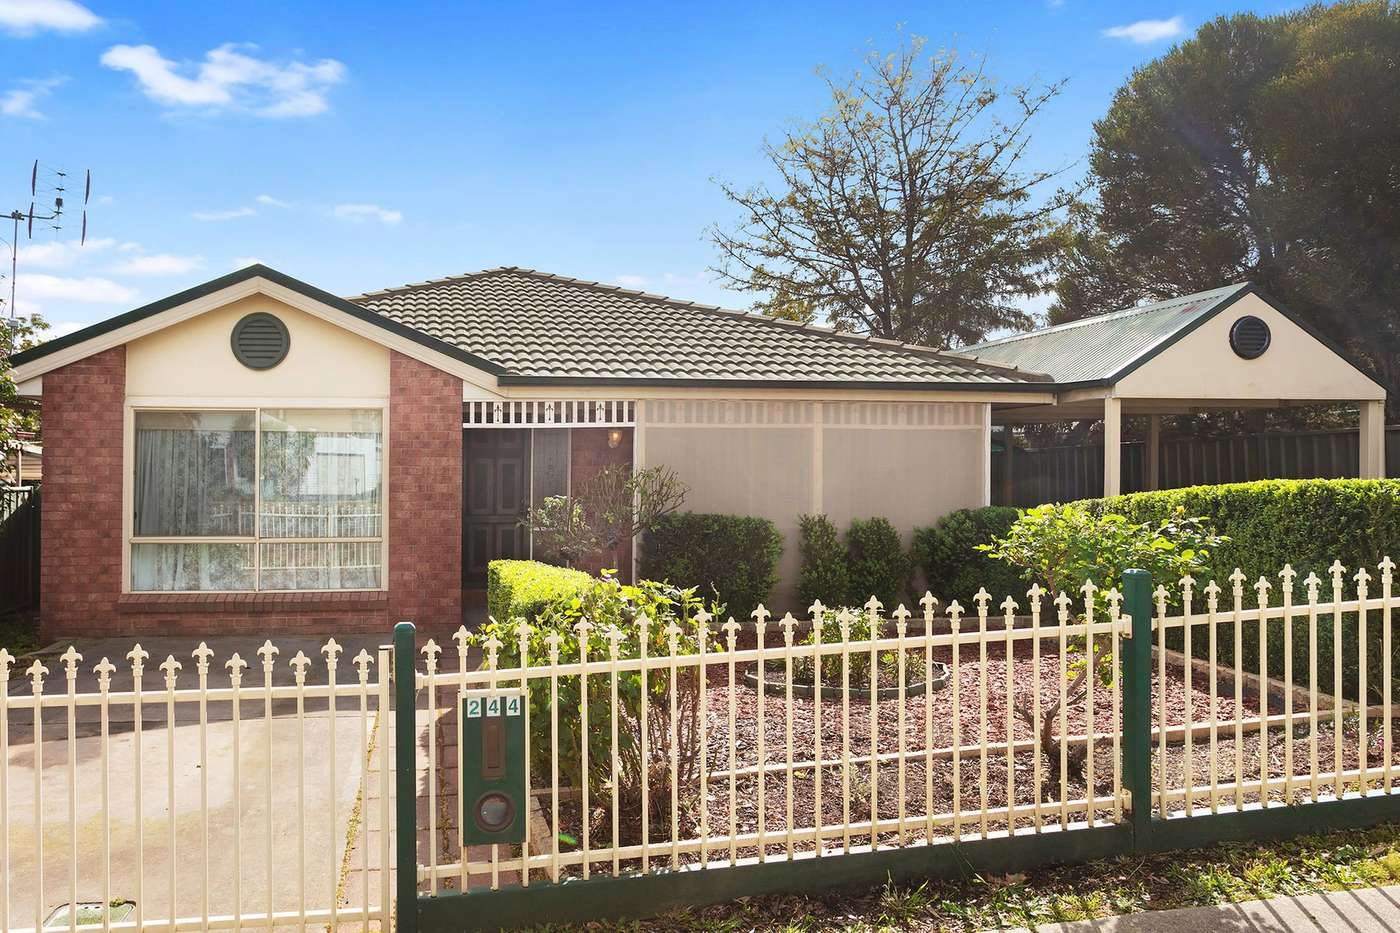 Main view of Homely house listing, 244 Arnold Street, North Bendigo, VIC 3550